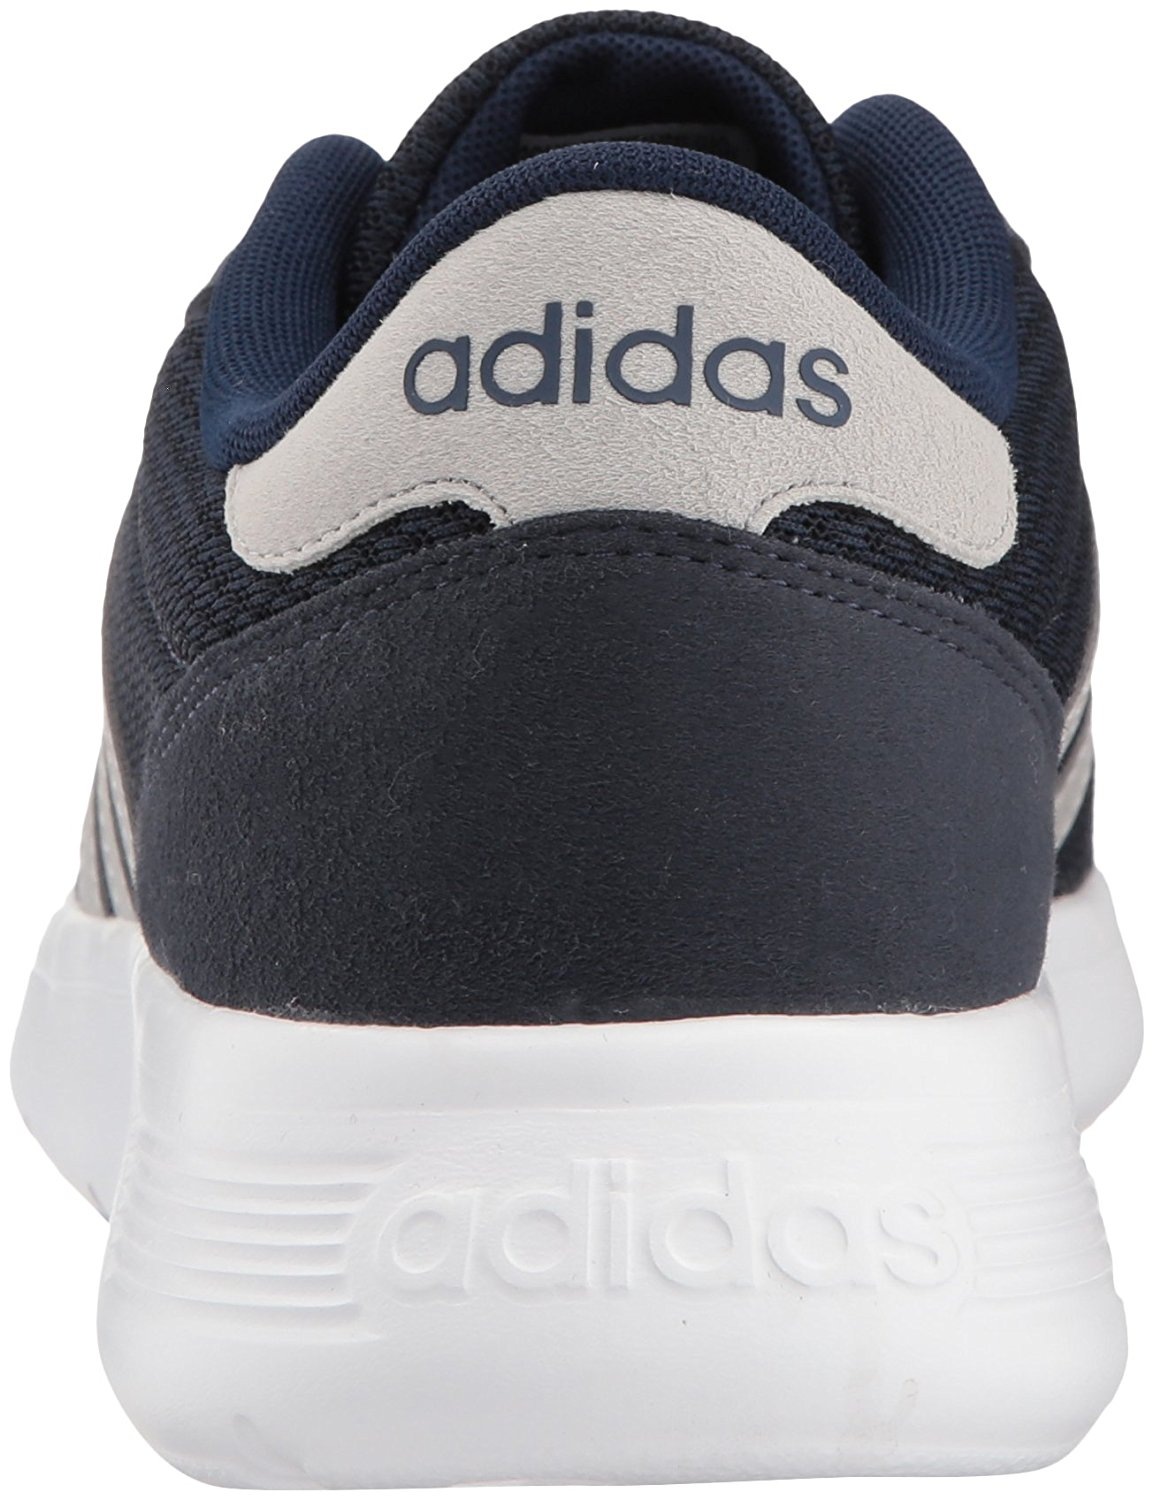 22b6db99ab54 Adidas Mens Lite Racer Fabric Low Top Lace Up Running Sneaker